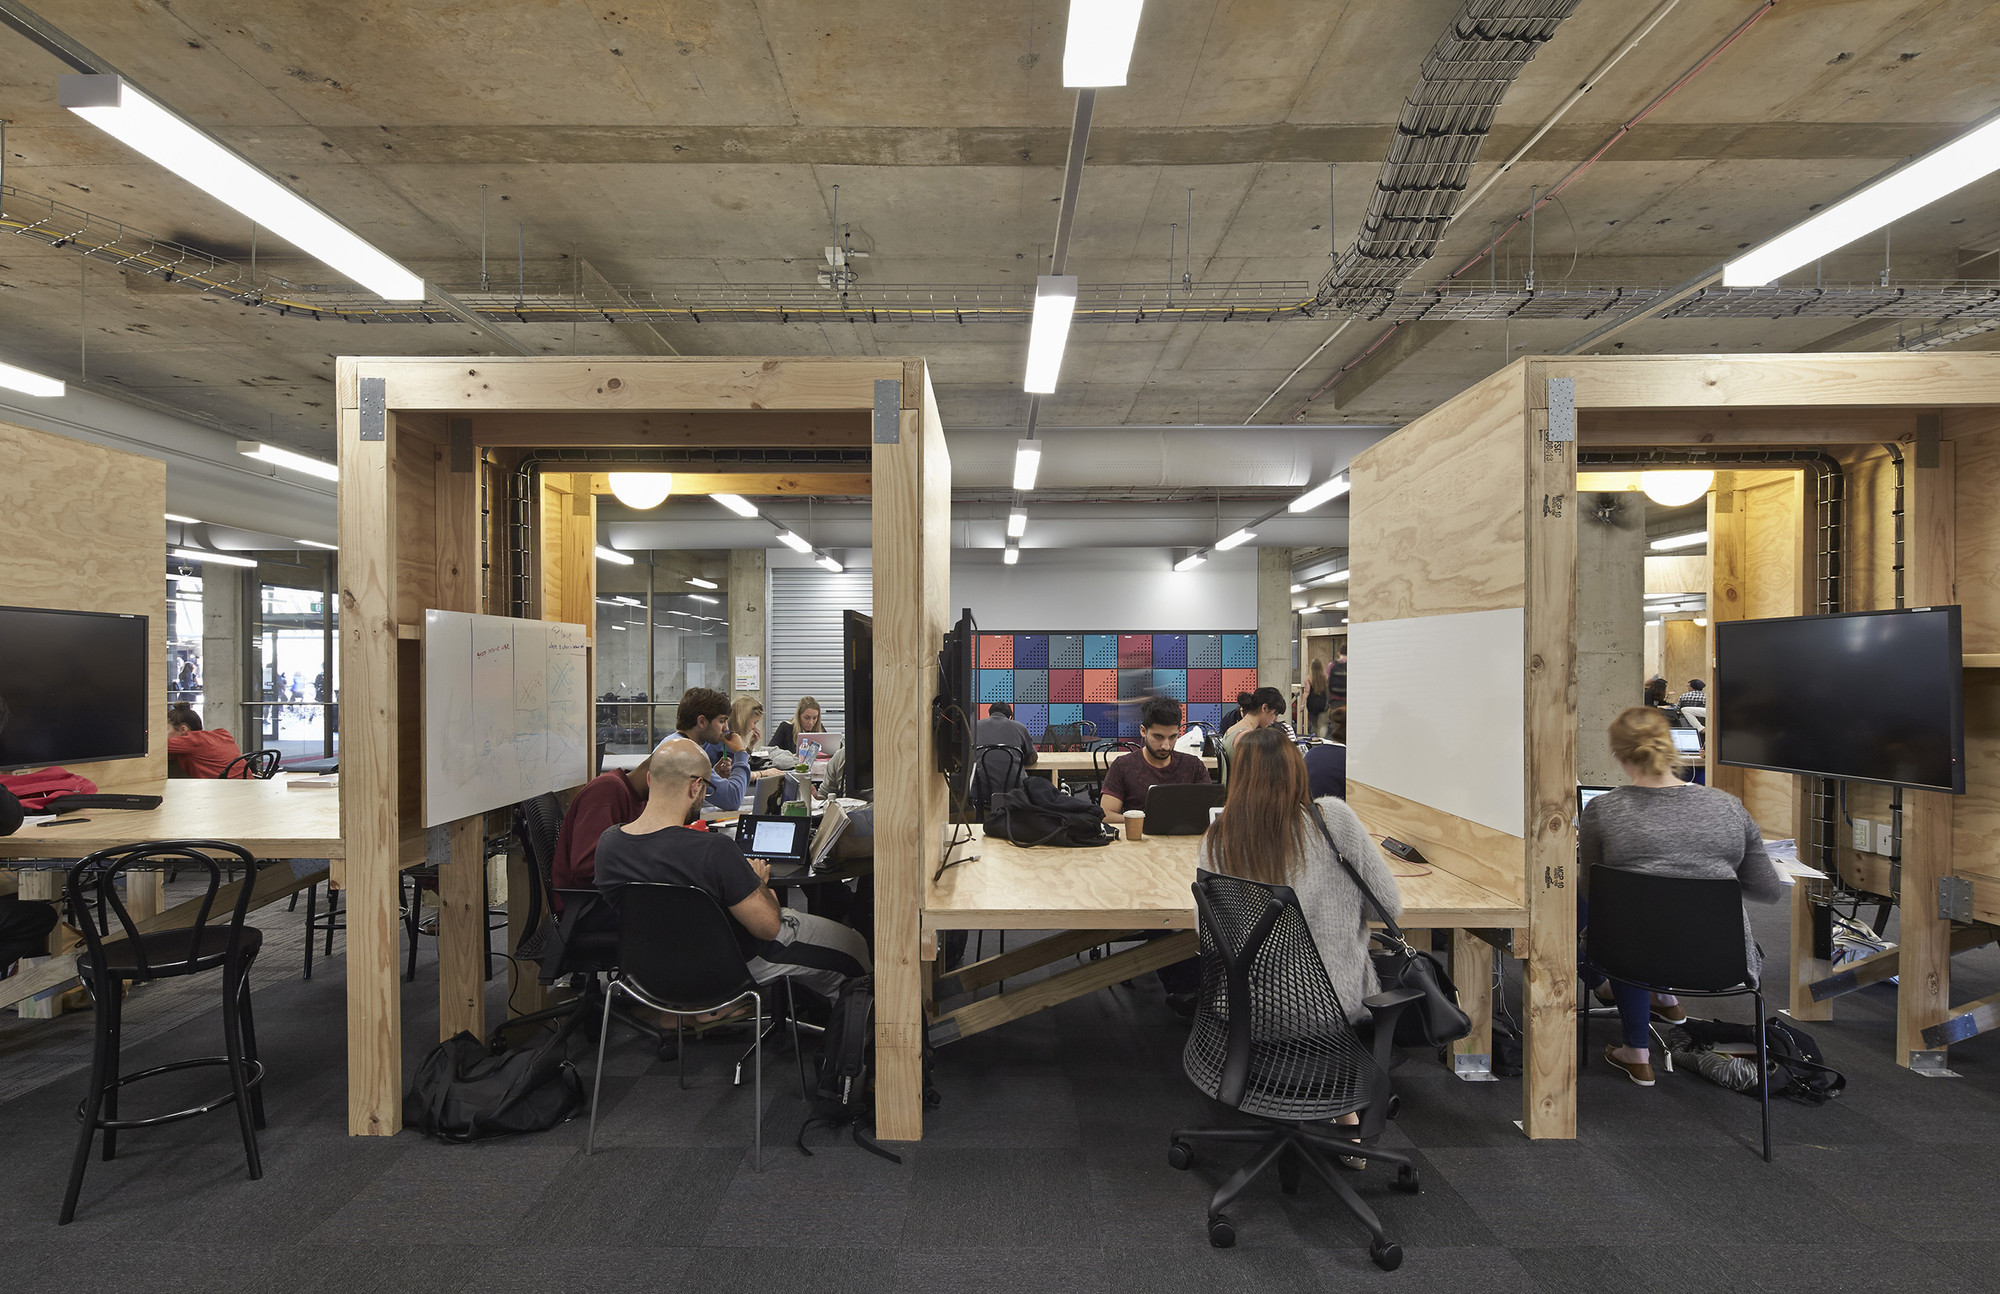 Gallery Of Macquarie University Social Learning Space